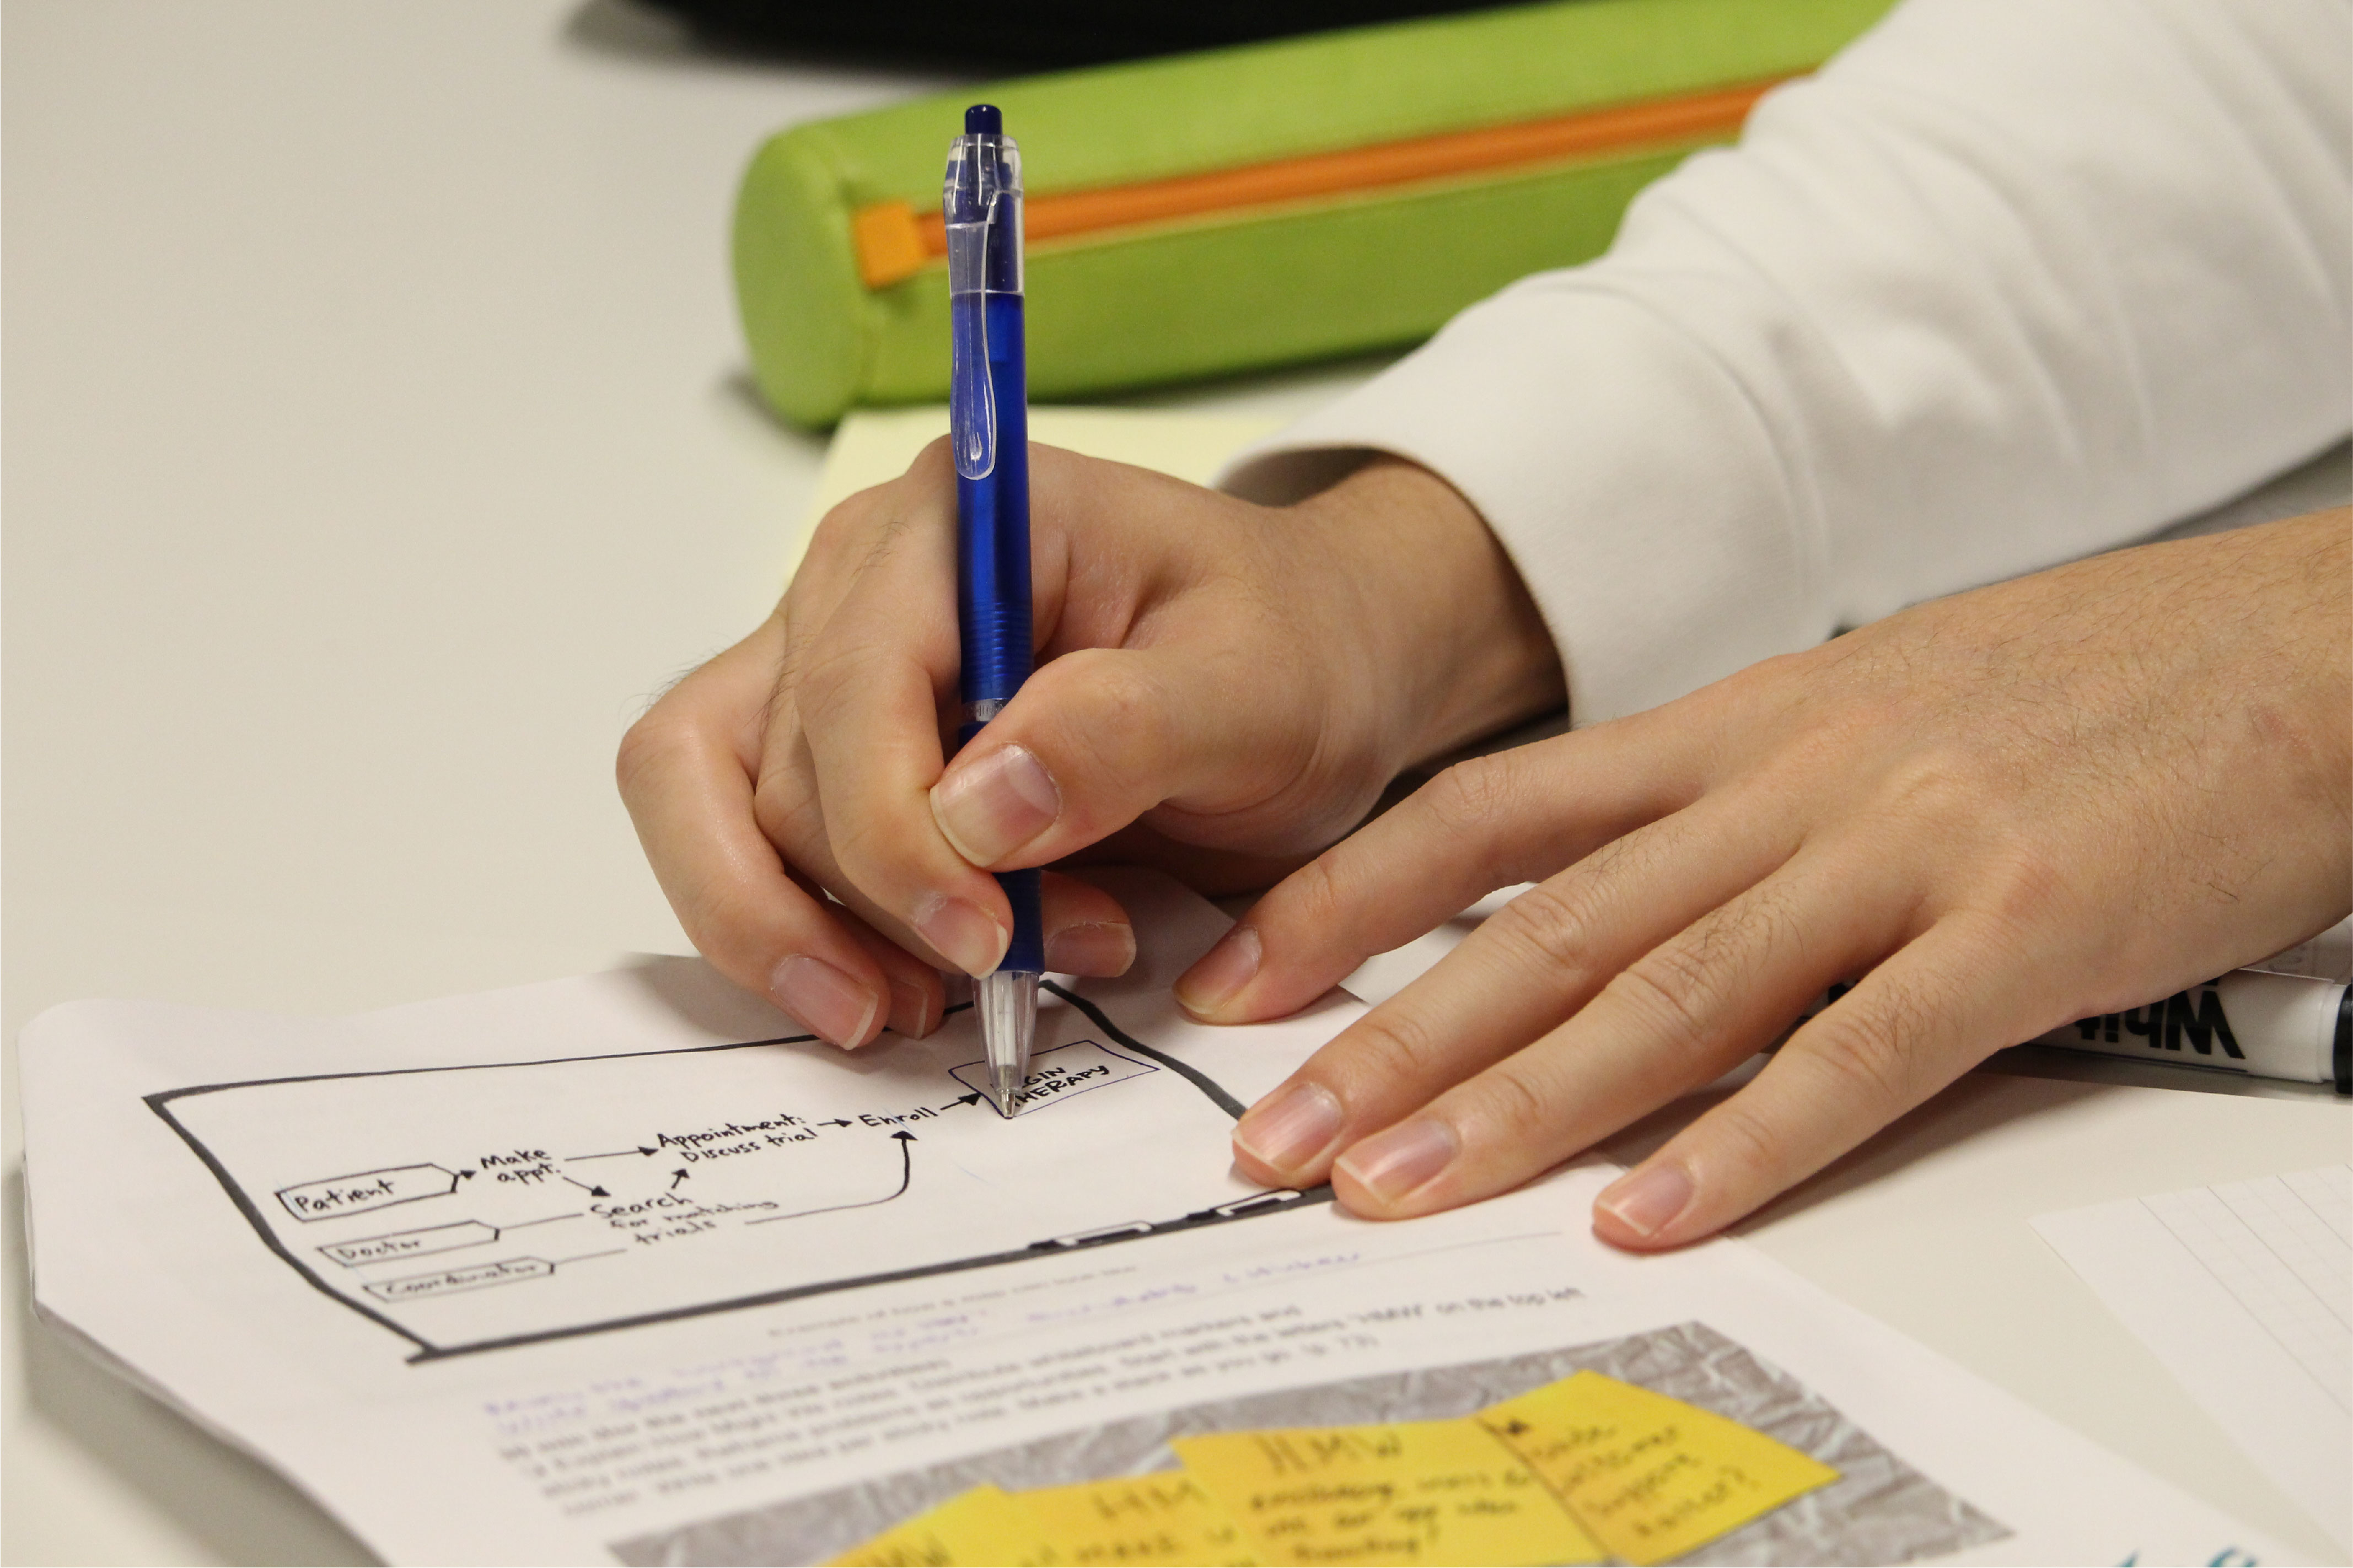 A student taking notes during a Design Sprint session